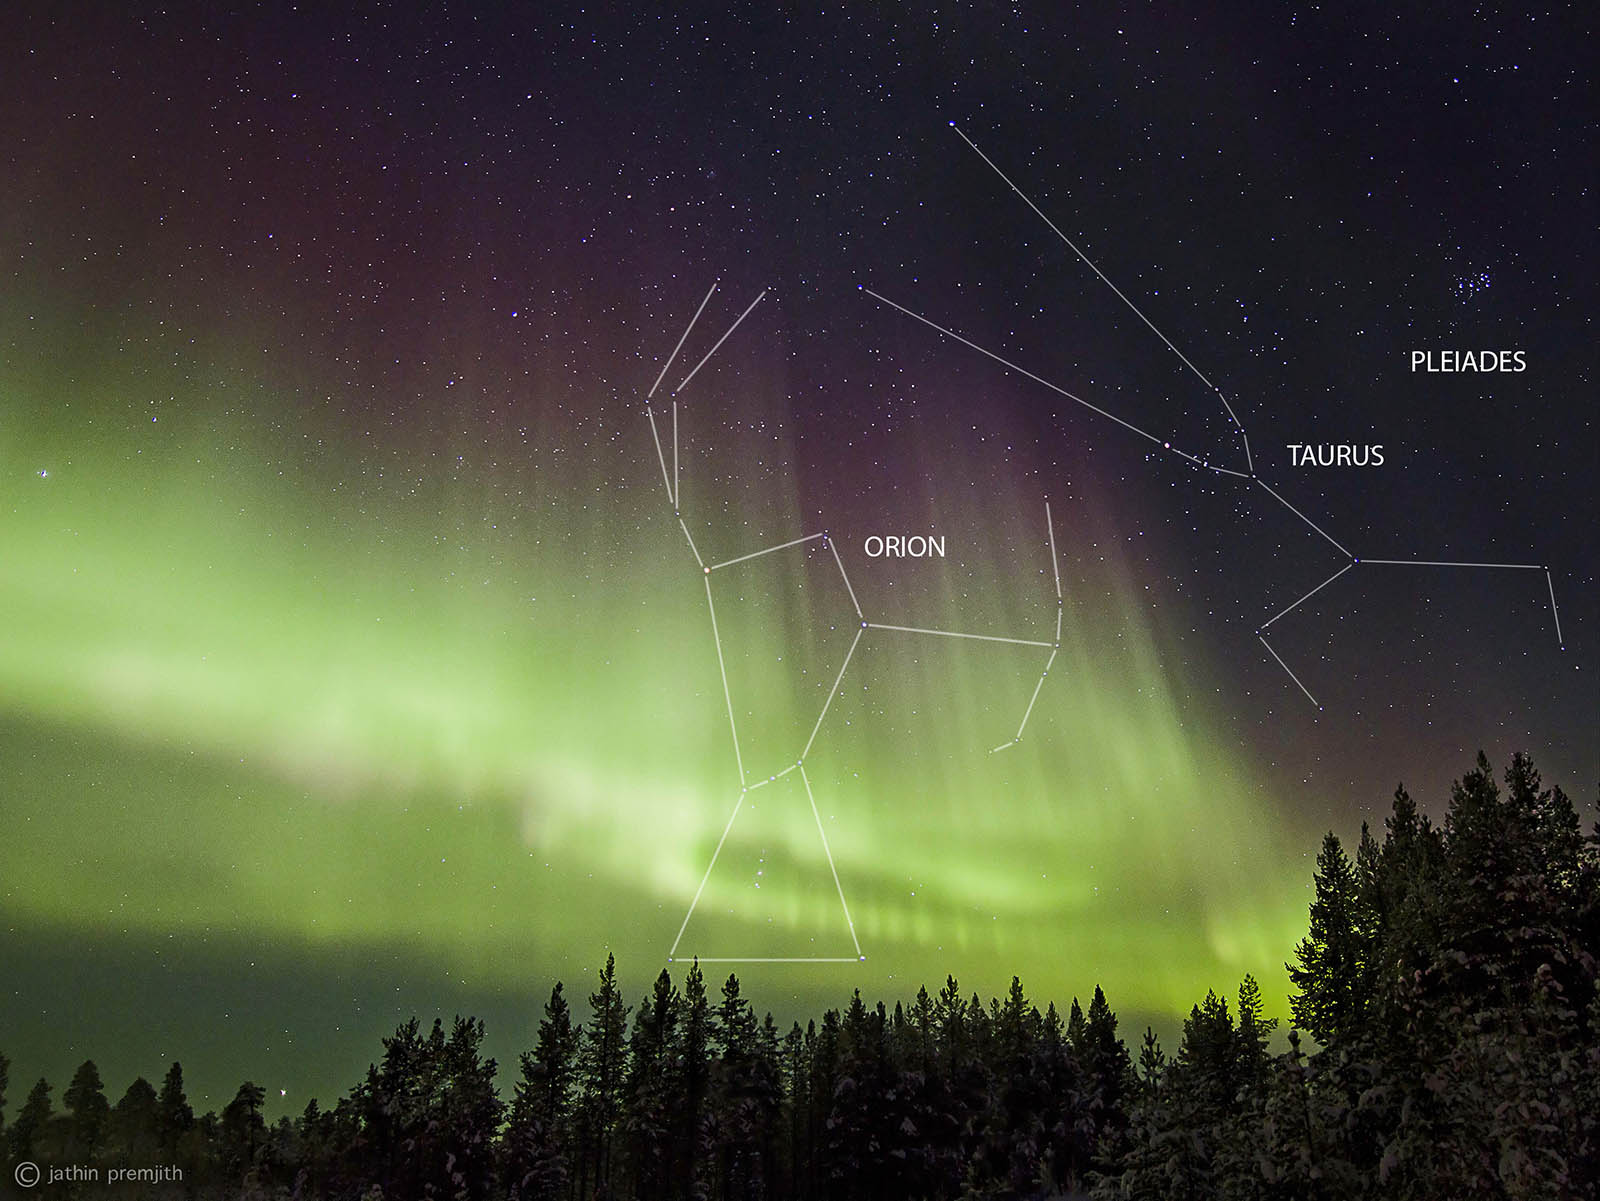 The award winning photo showing the different constellations